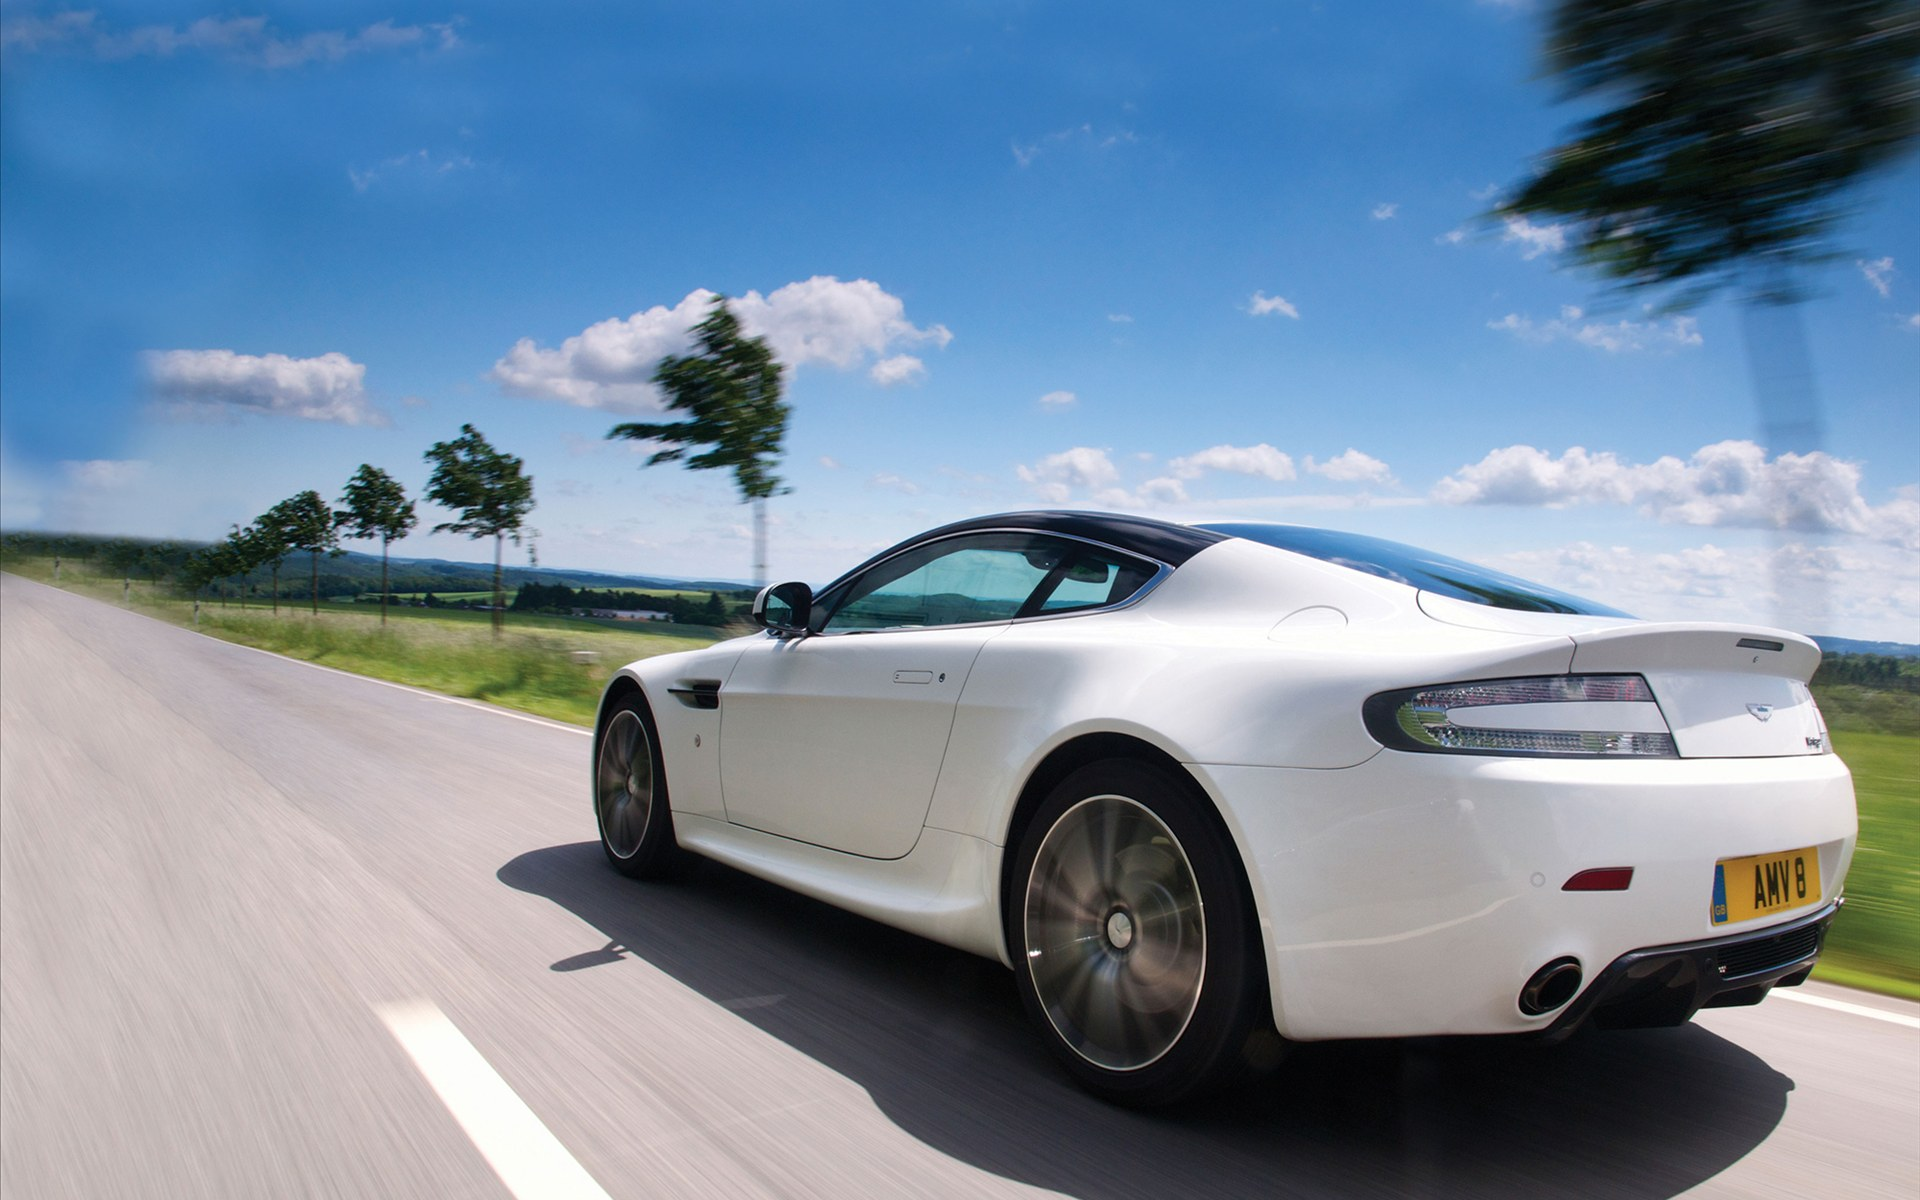 Aston Martin V8 Vantage N420 2011 widescreen 10 2011 Aston Martin V8 Vantage N420   Review, Photos, Price, Features